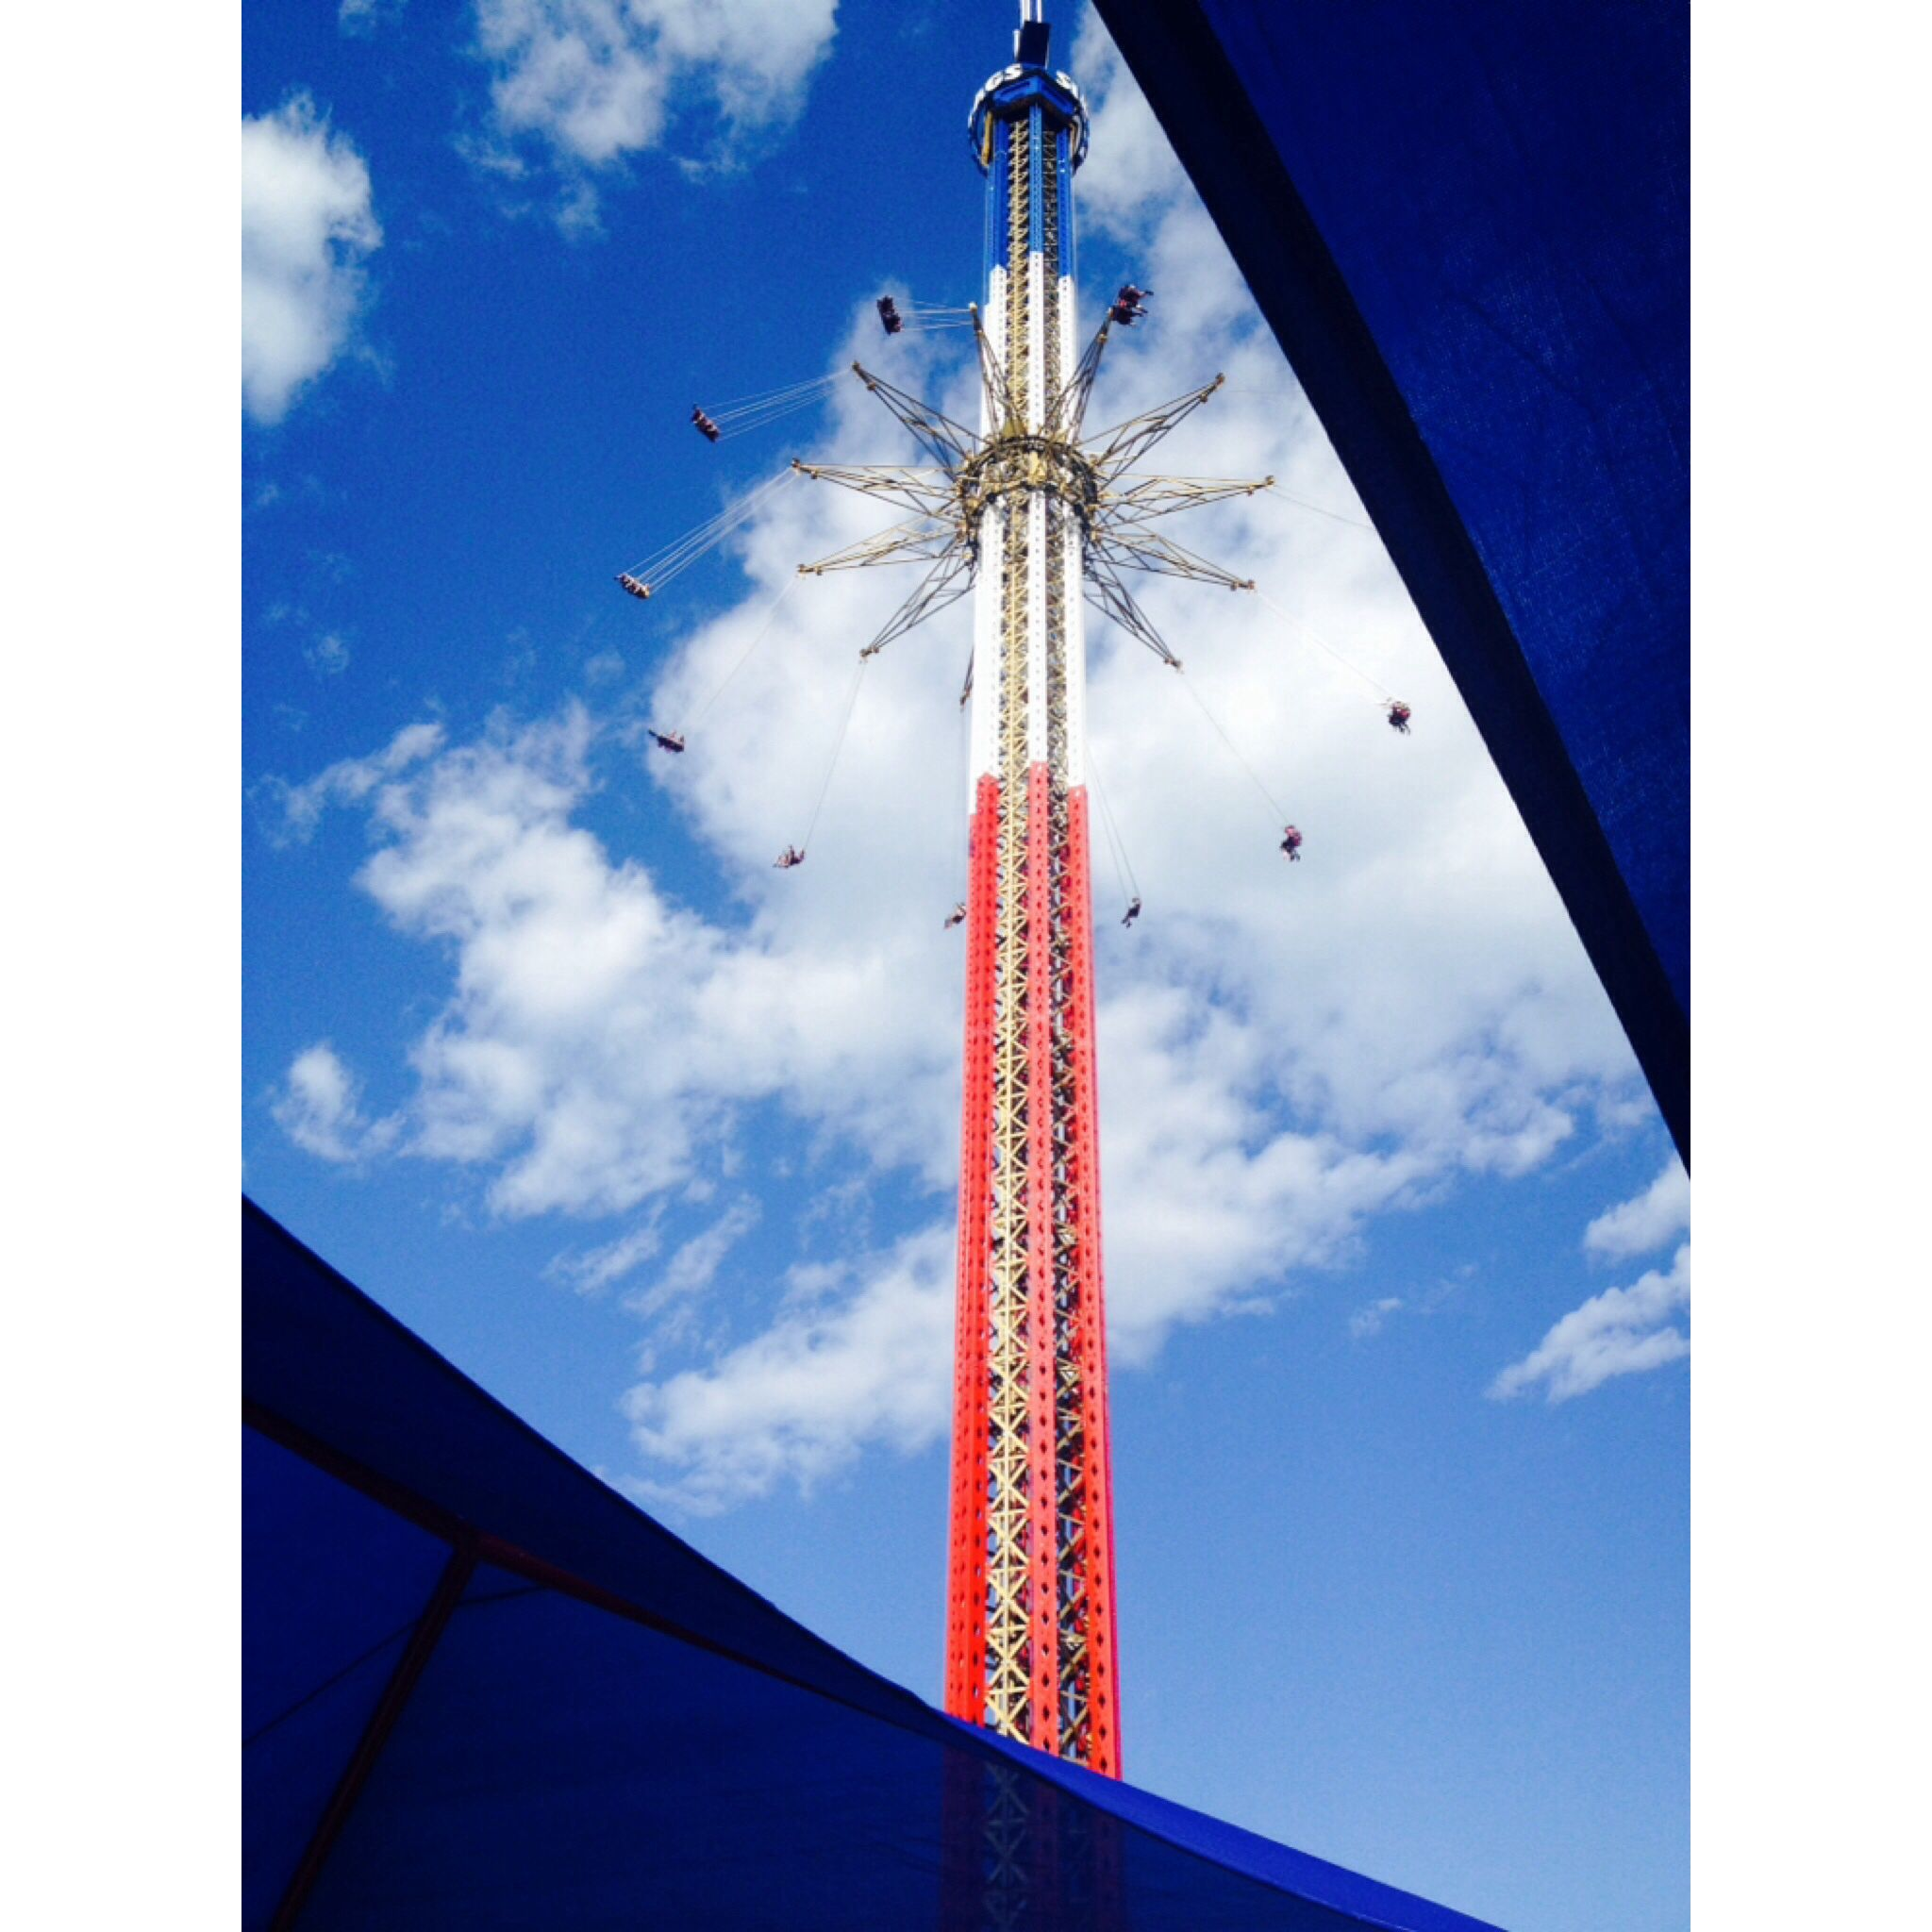 400ft Swing Ride Sky Screamer At Six Flags New England